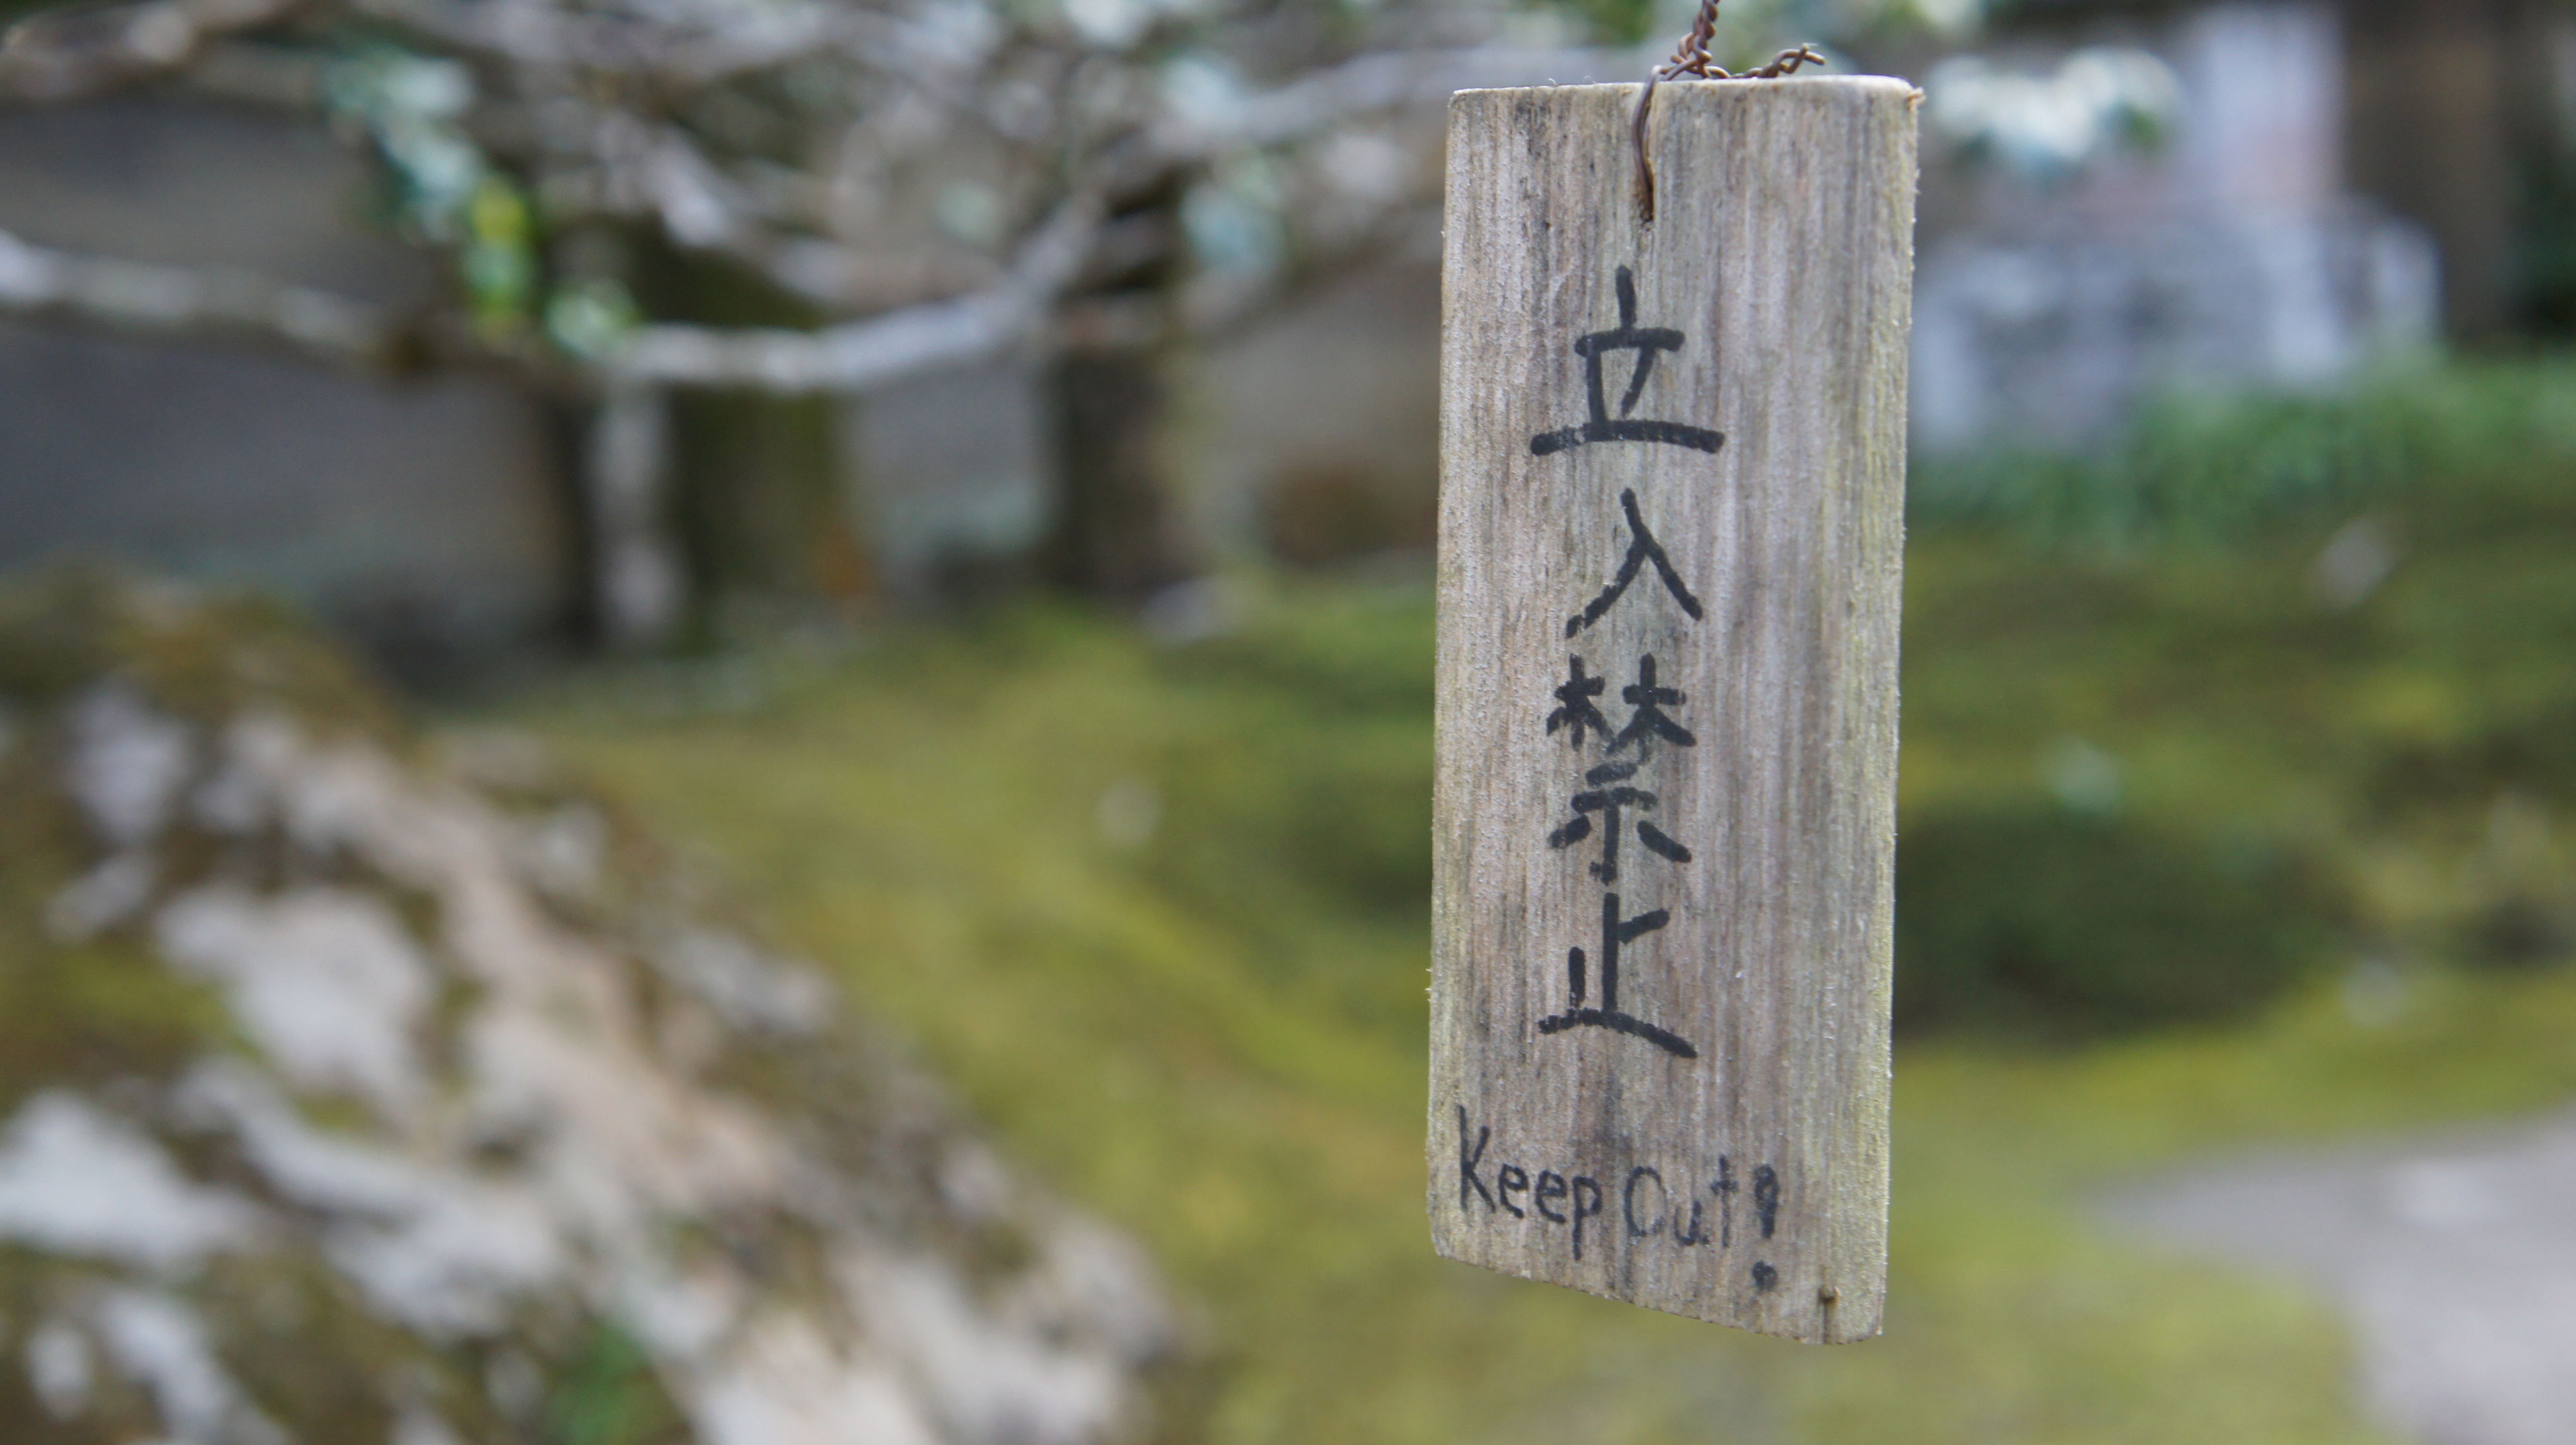 wood - material, focus on foreground, no people, nature, close-up, outdoors, day, tree